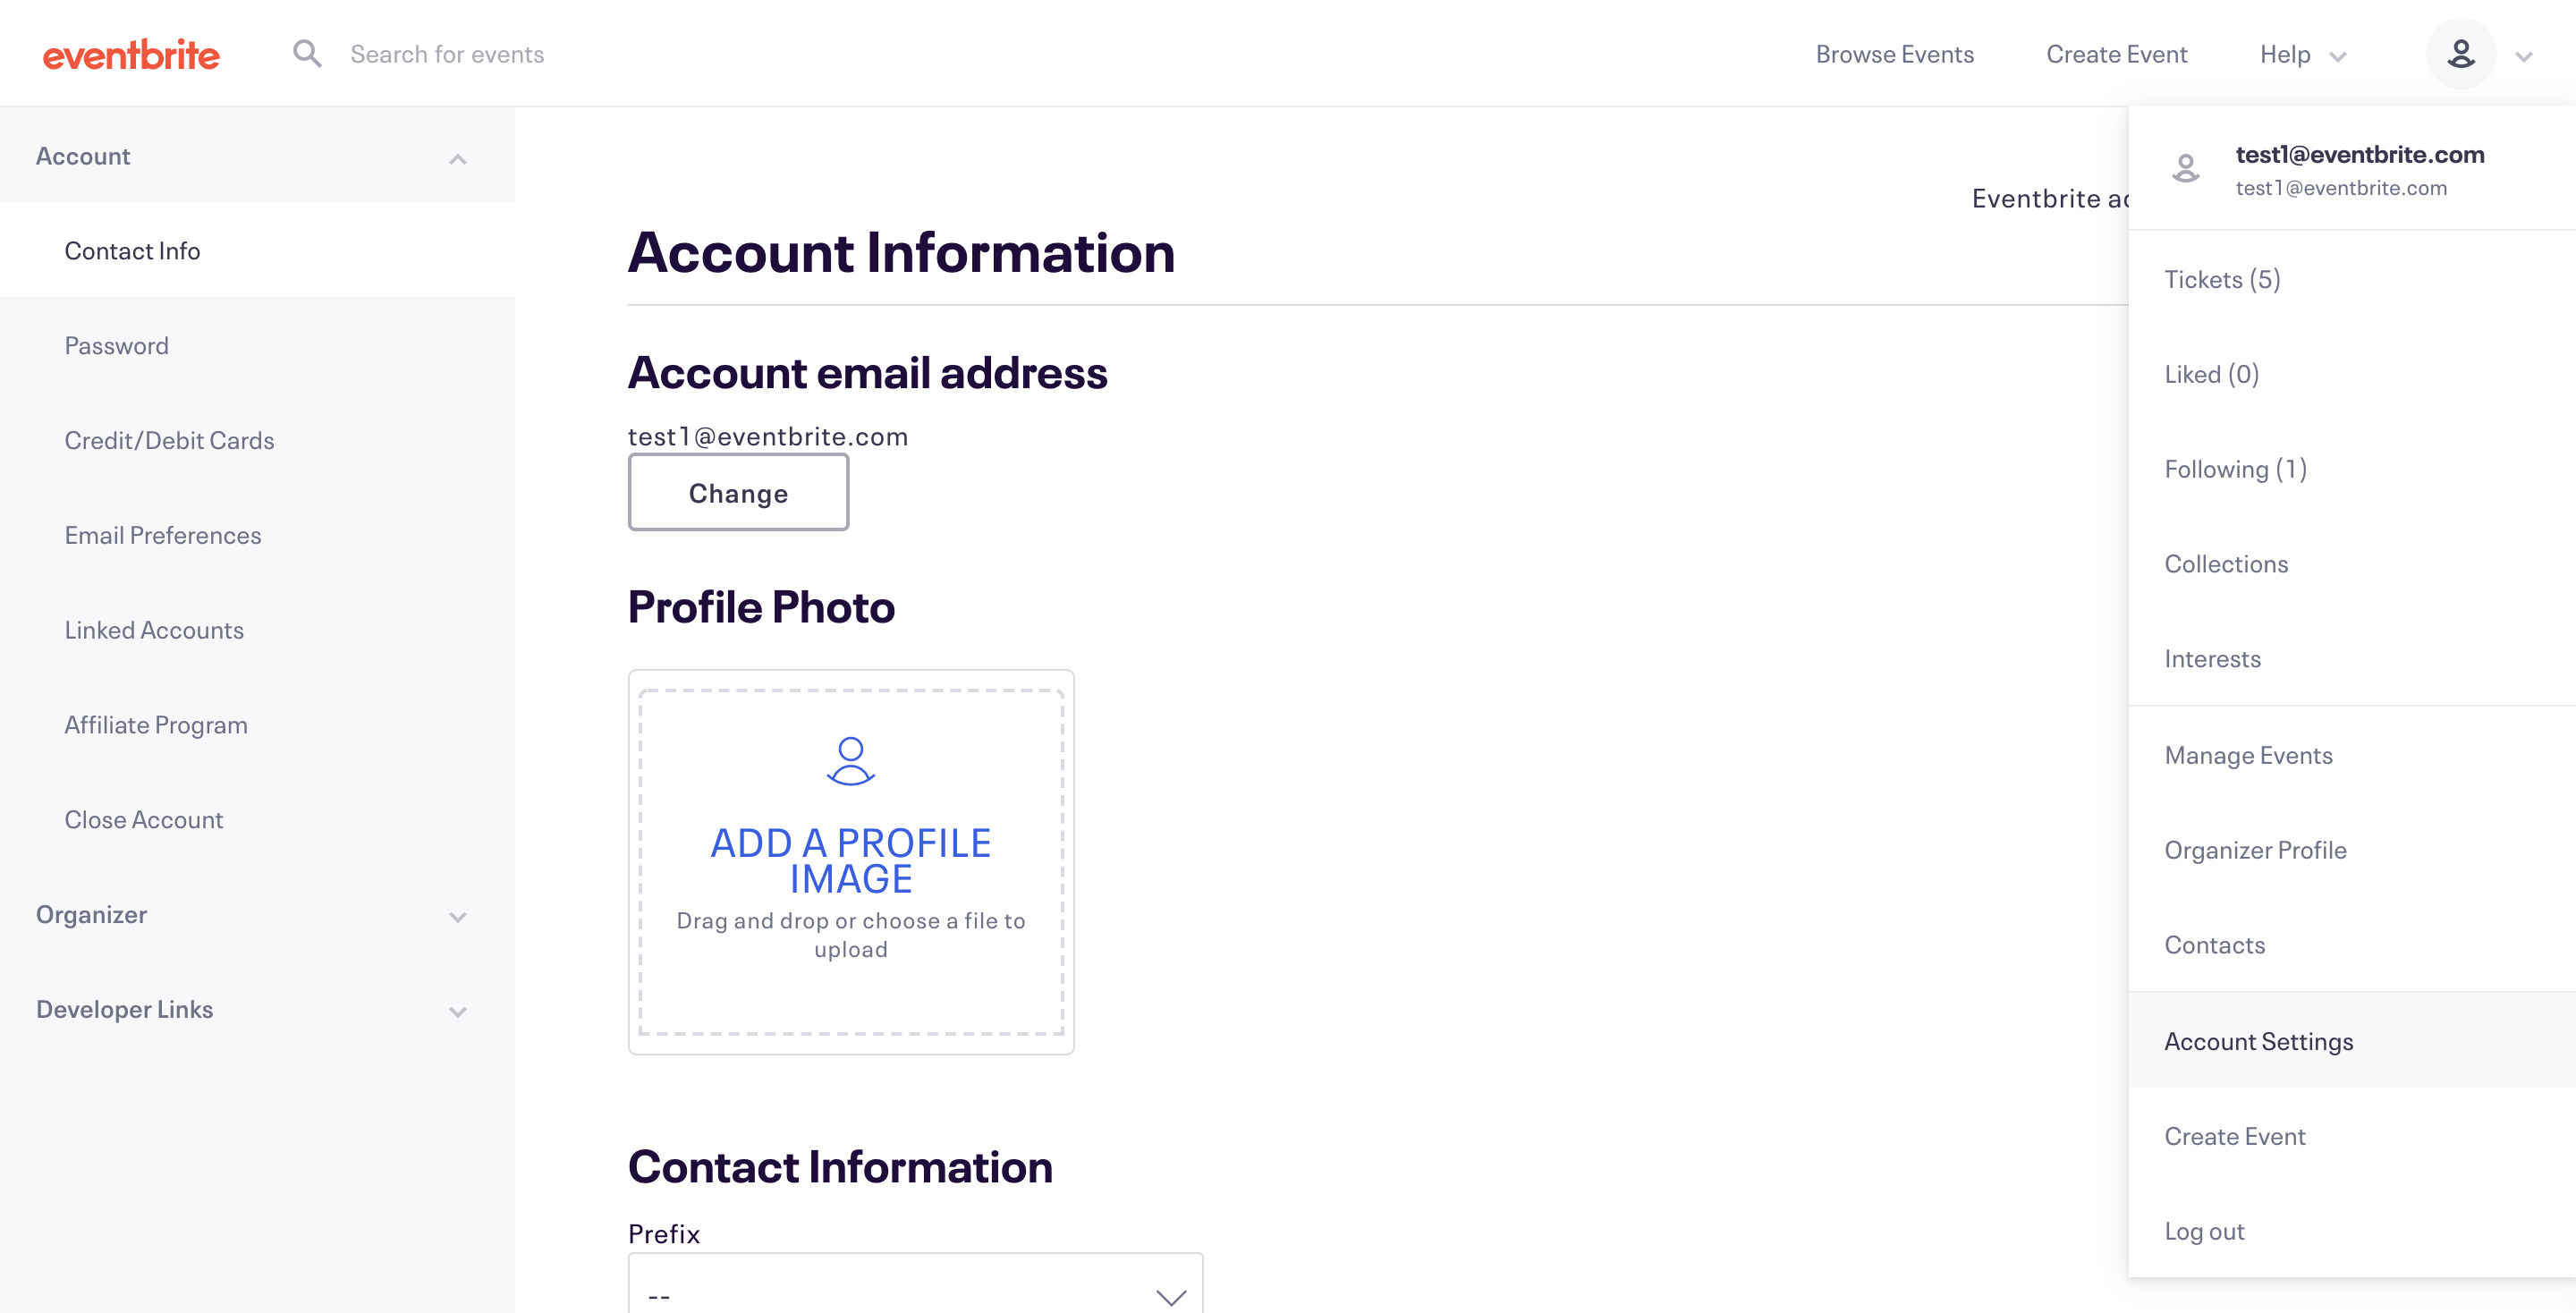 The account menu is located at the top of the page, and Account is the second-to-last option.